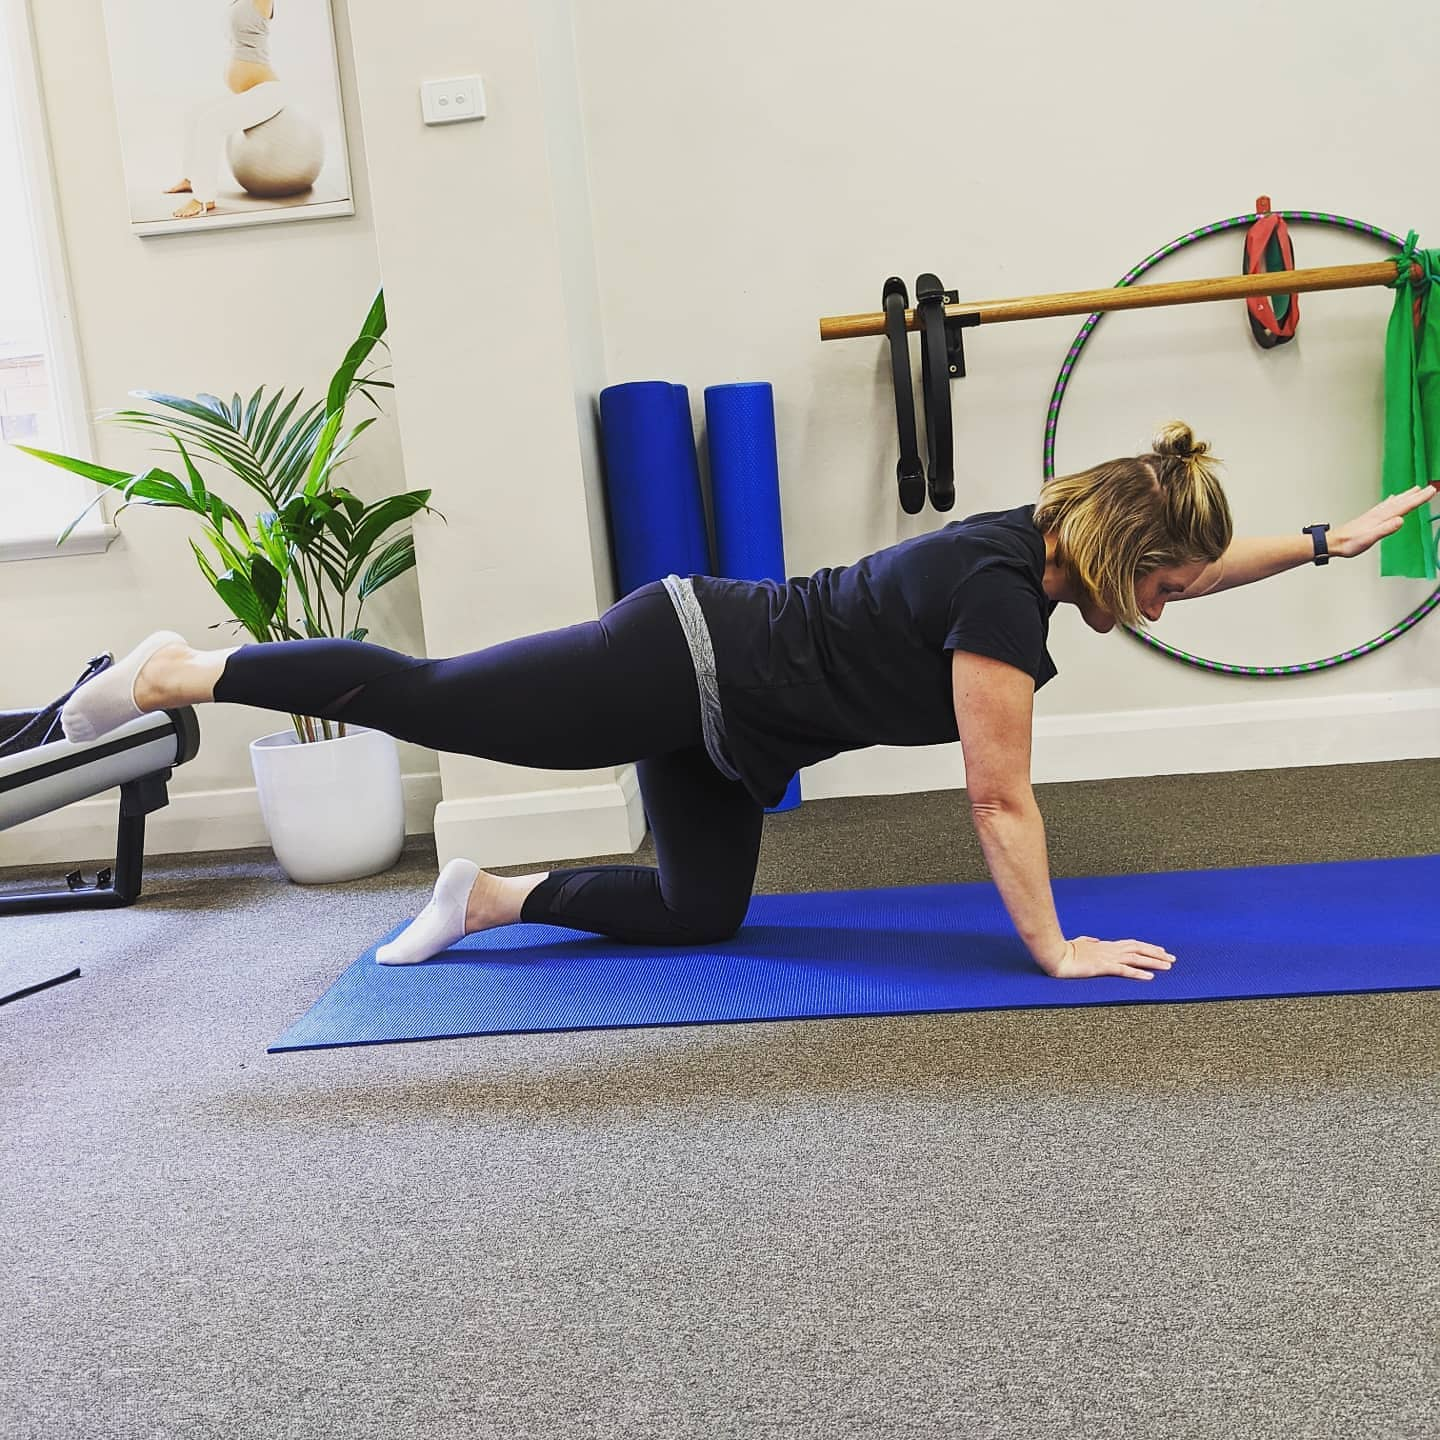 TUES 11AM FREE LOCKDOWN MUMS & BUBS PILATES SESSION ON FACEBOOK LIVE!  Don't let this lockdown delay your post natal recovery! Join our Physio Caitlin online tomorrow at 11am for another 20-30 minute post-natal strengthening session.  Go to our Facebook page for more details.